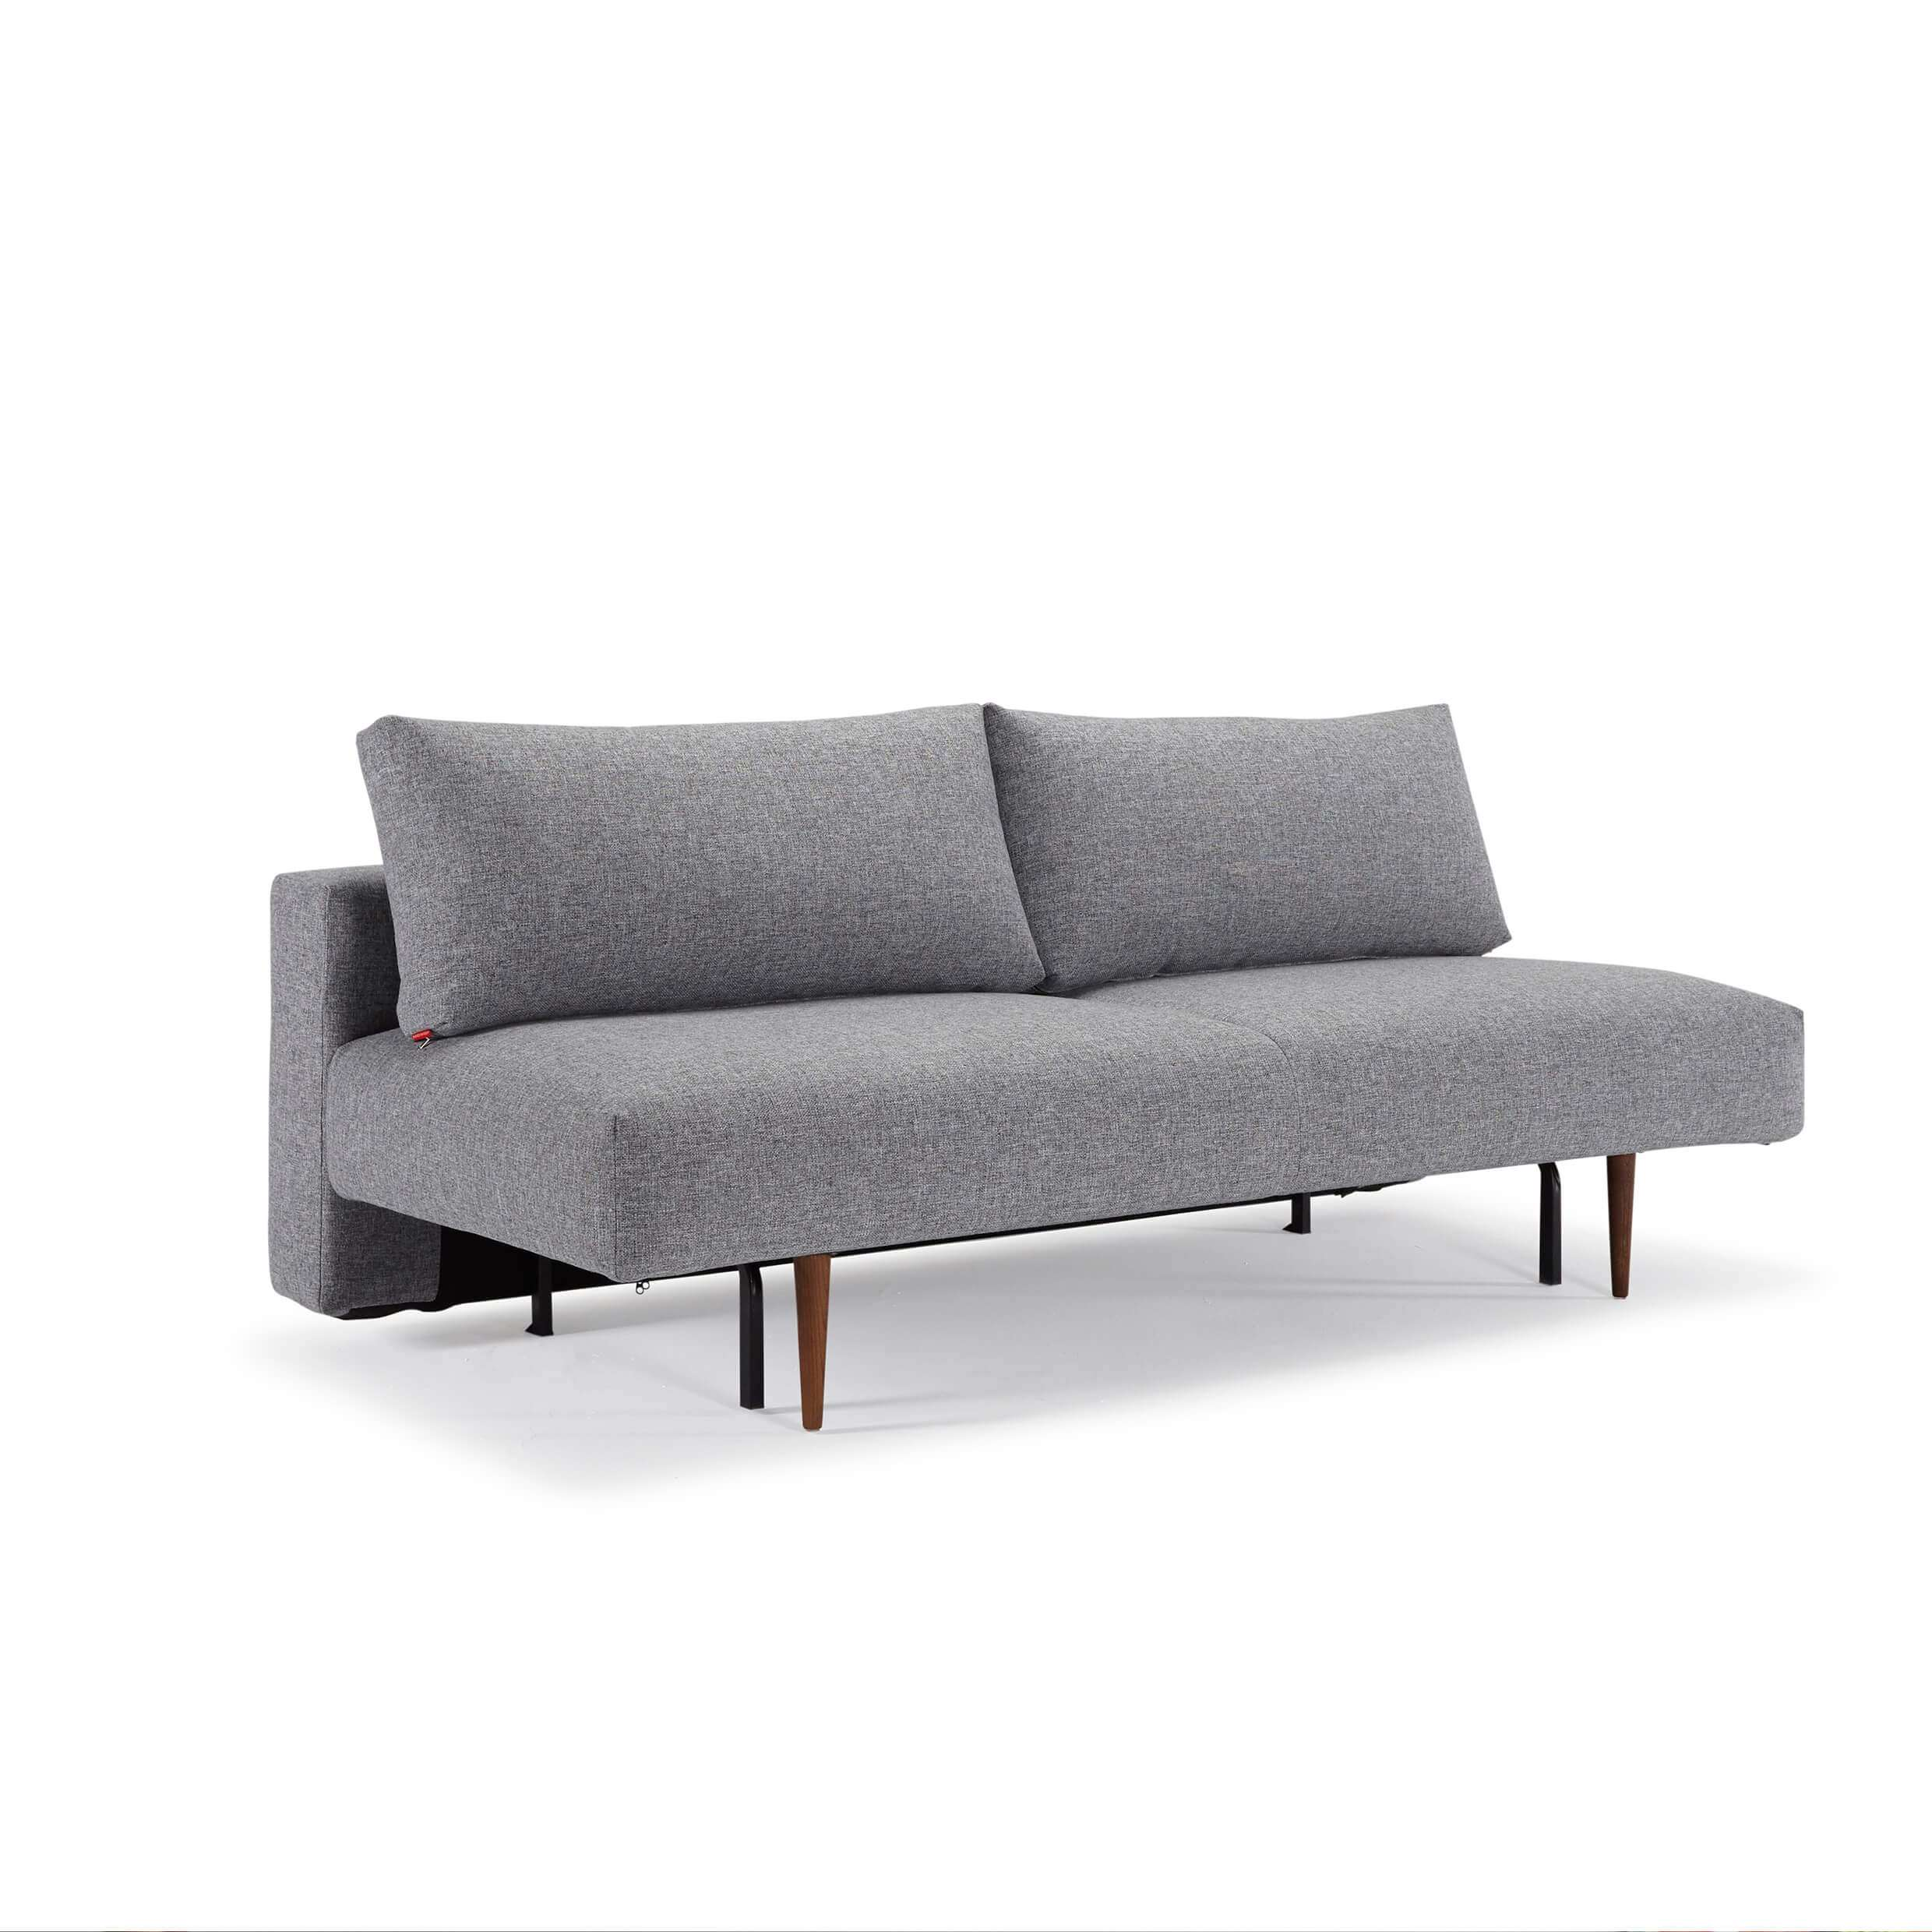 Evolution Convertible Sleeper Sofa